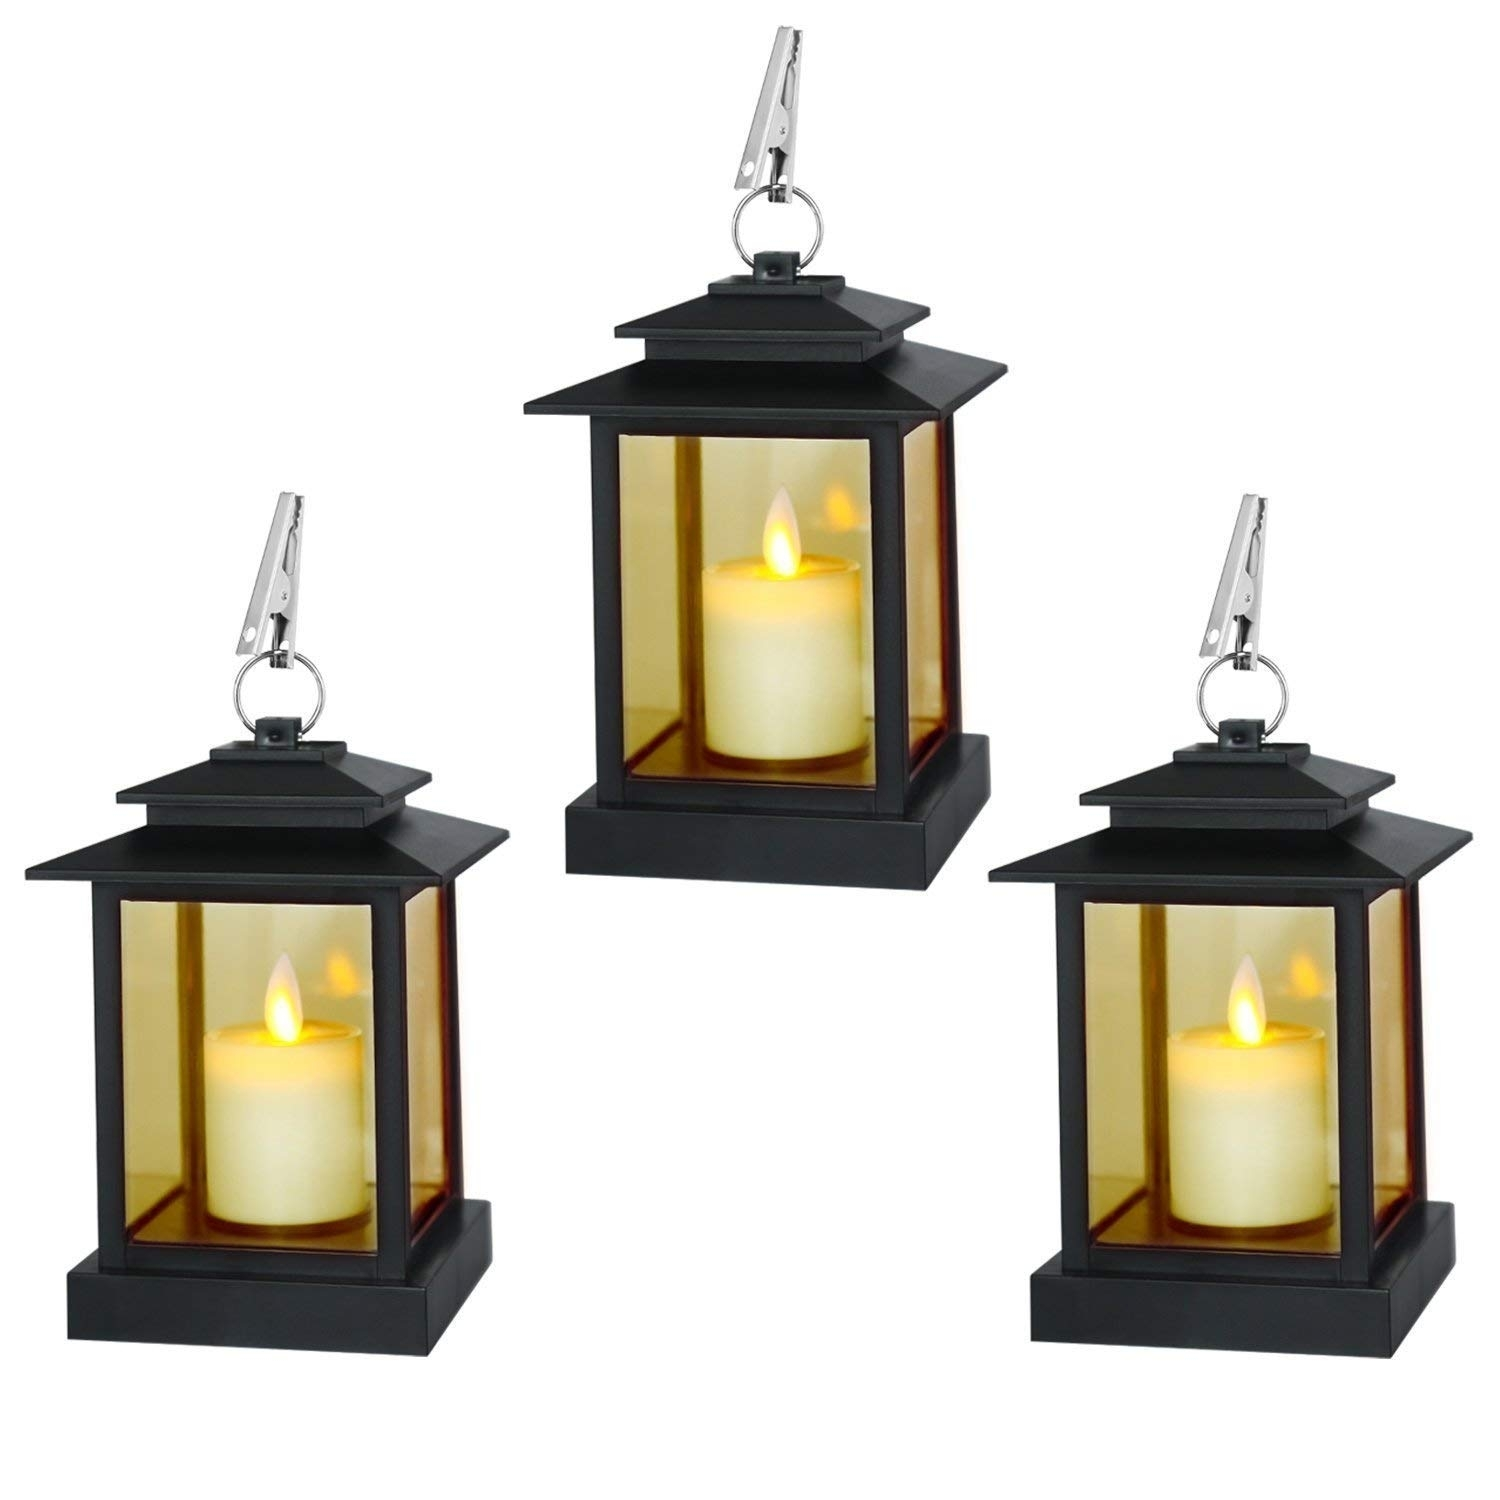 Amazon: Decorative Candle Lanterns, Set Of 3 Indoor And Outdoor Pertaining To Resin Outdoor Lanterns (View 17 of 20)